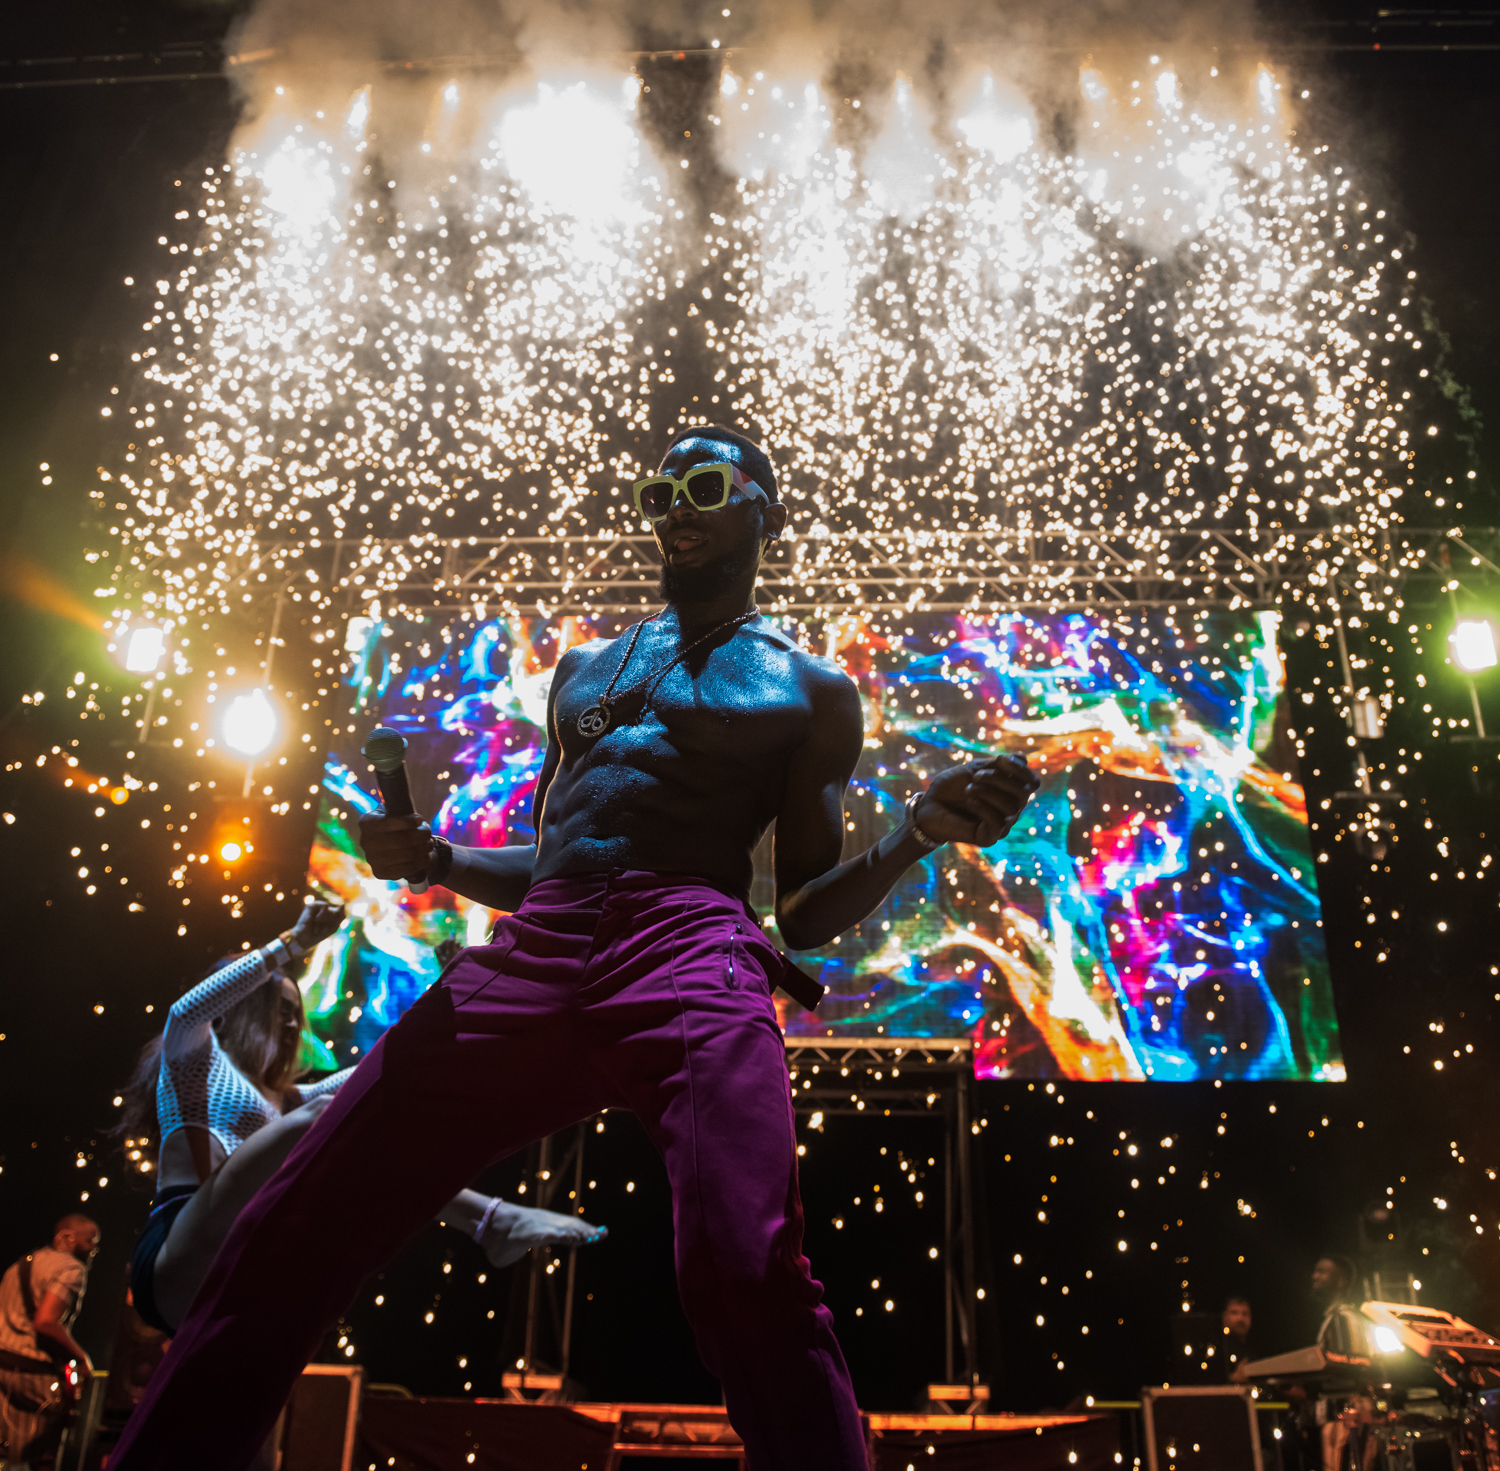 London, United Kingdom. 25th August 2019. Dbanj performing live with Compozers at 02 Academy Brixton during his UK tour.